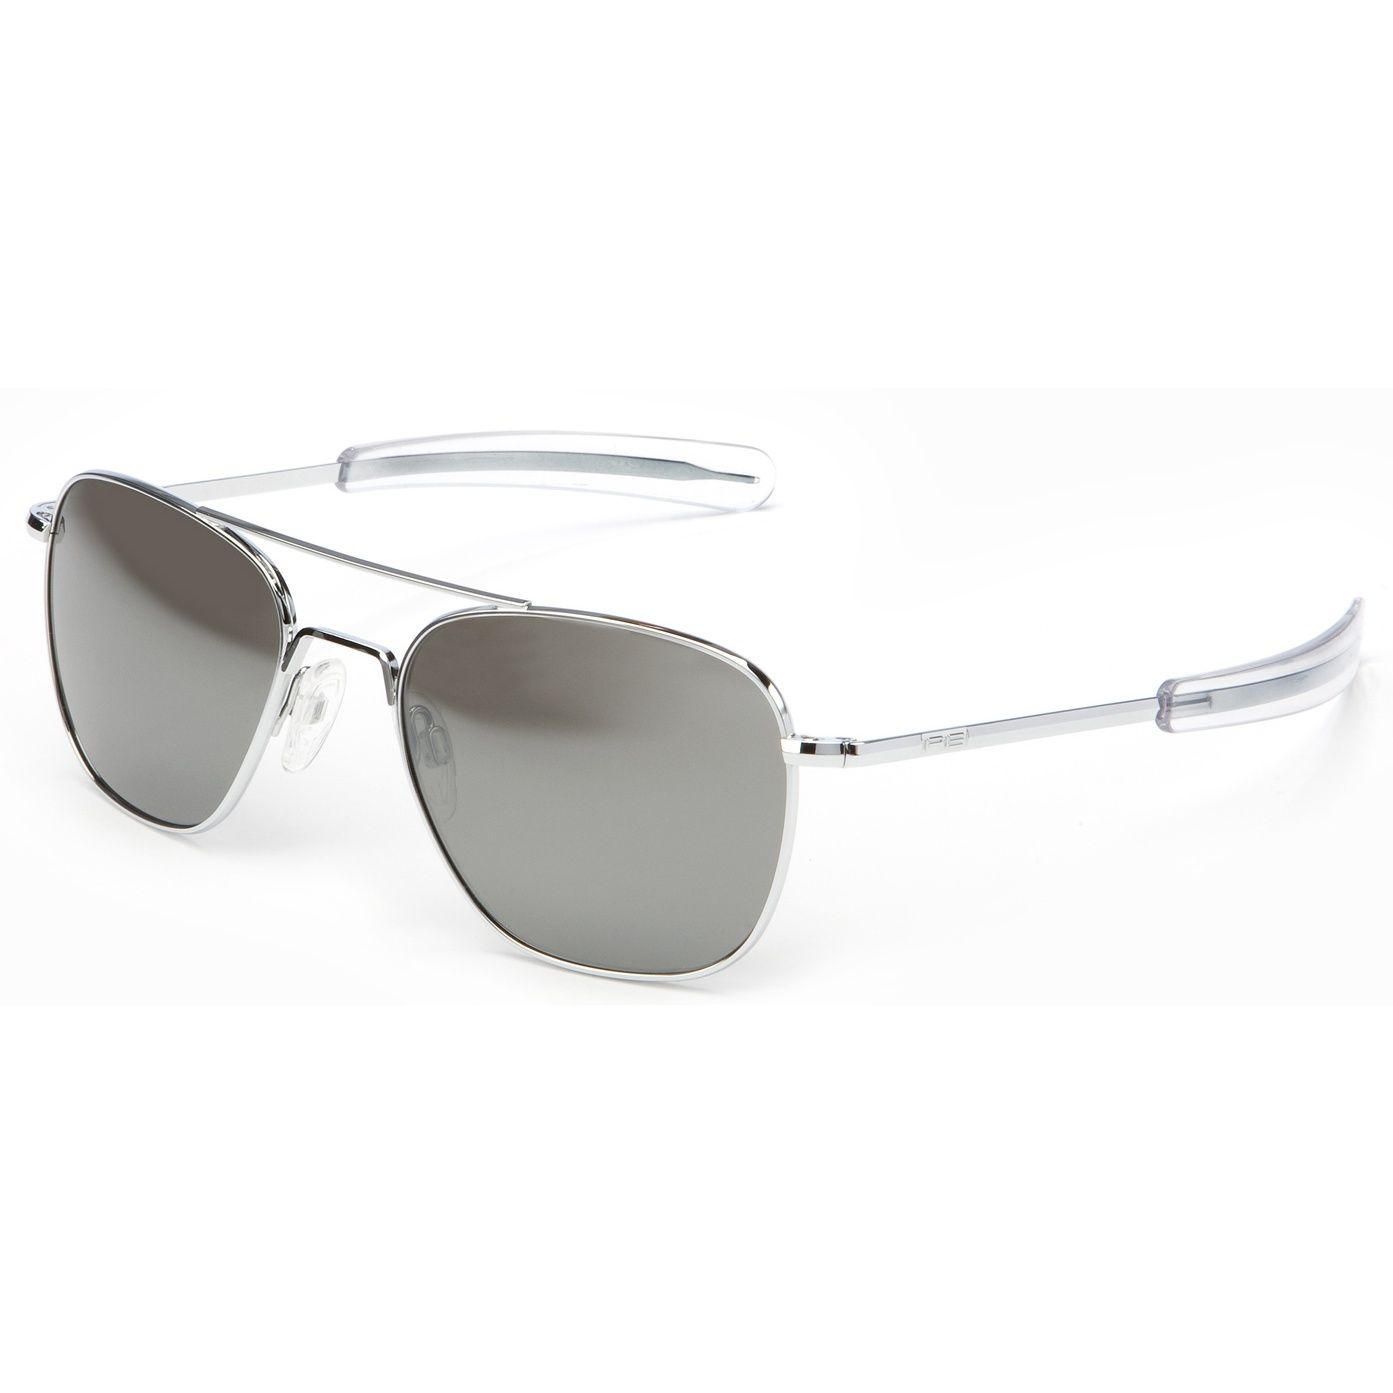 70857679c6 Randolph Aviators Bright Chrome Bayonet - Grey Mirror Lens. These Randolph  aviator sunglasses feature the popular bayonet frame in a Bright Chrome  finish ...